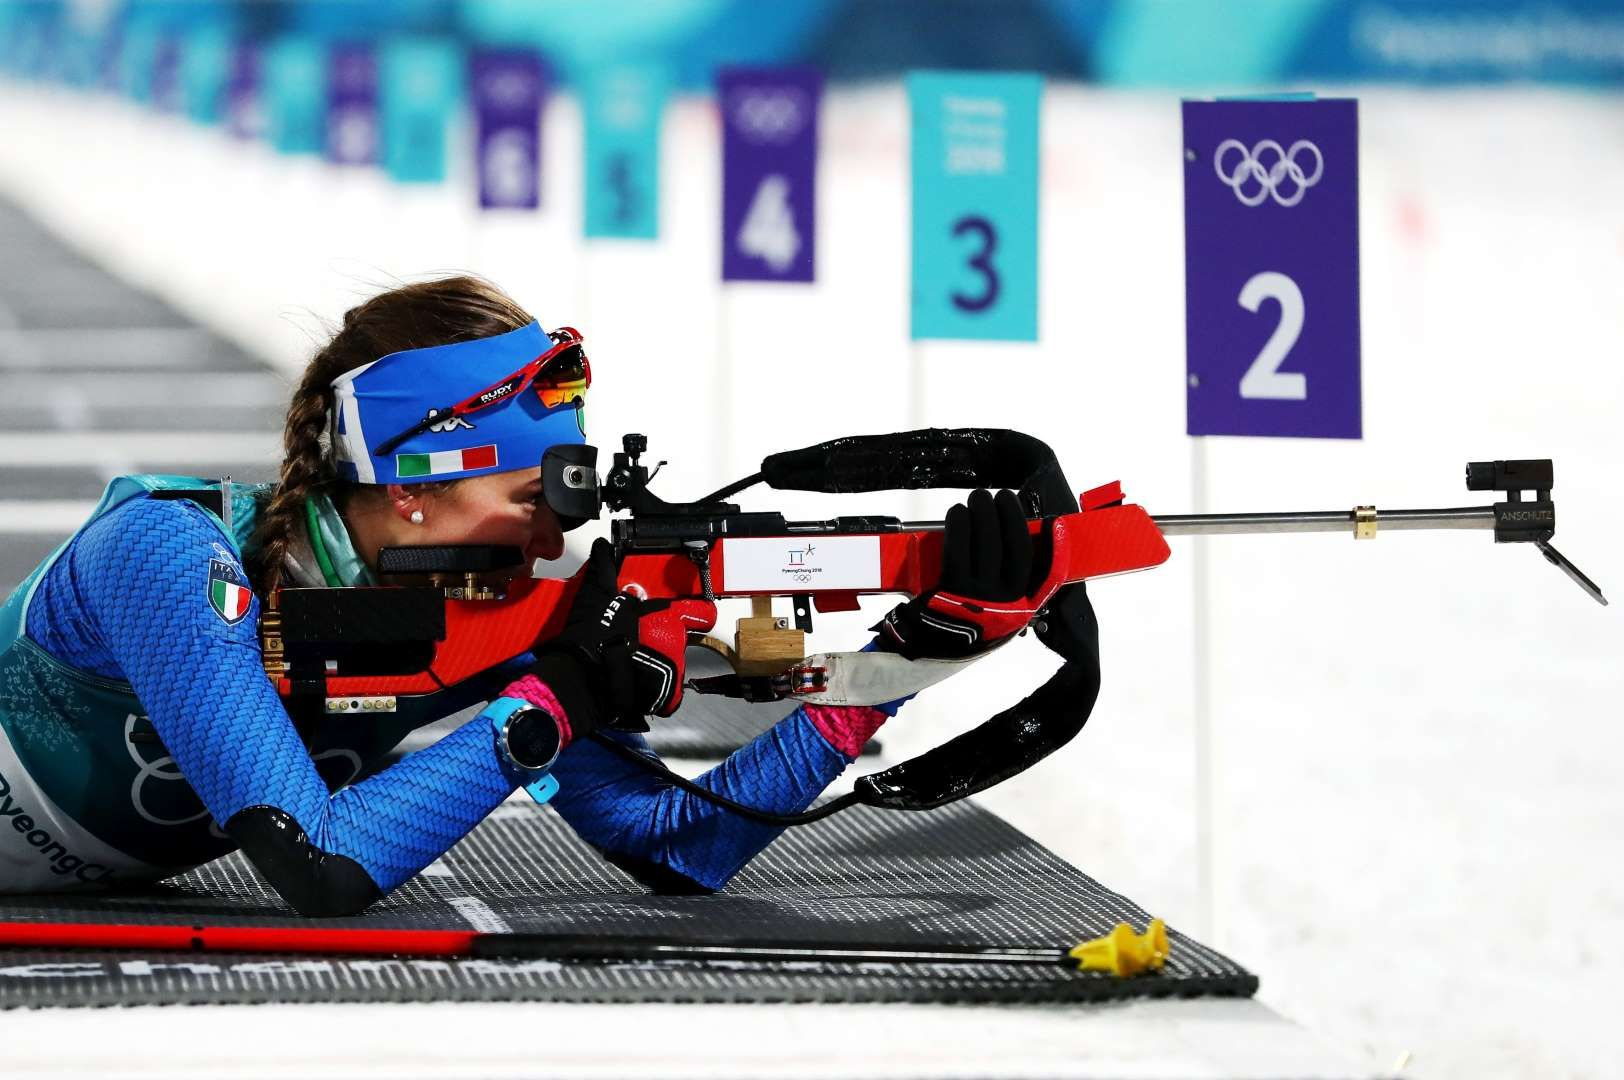 Biathlon At The 2020 Olympic Winter Games.2018 Winter Olympics Nicole Gontier Of Italy Competes